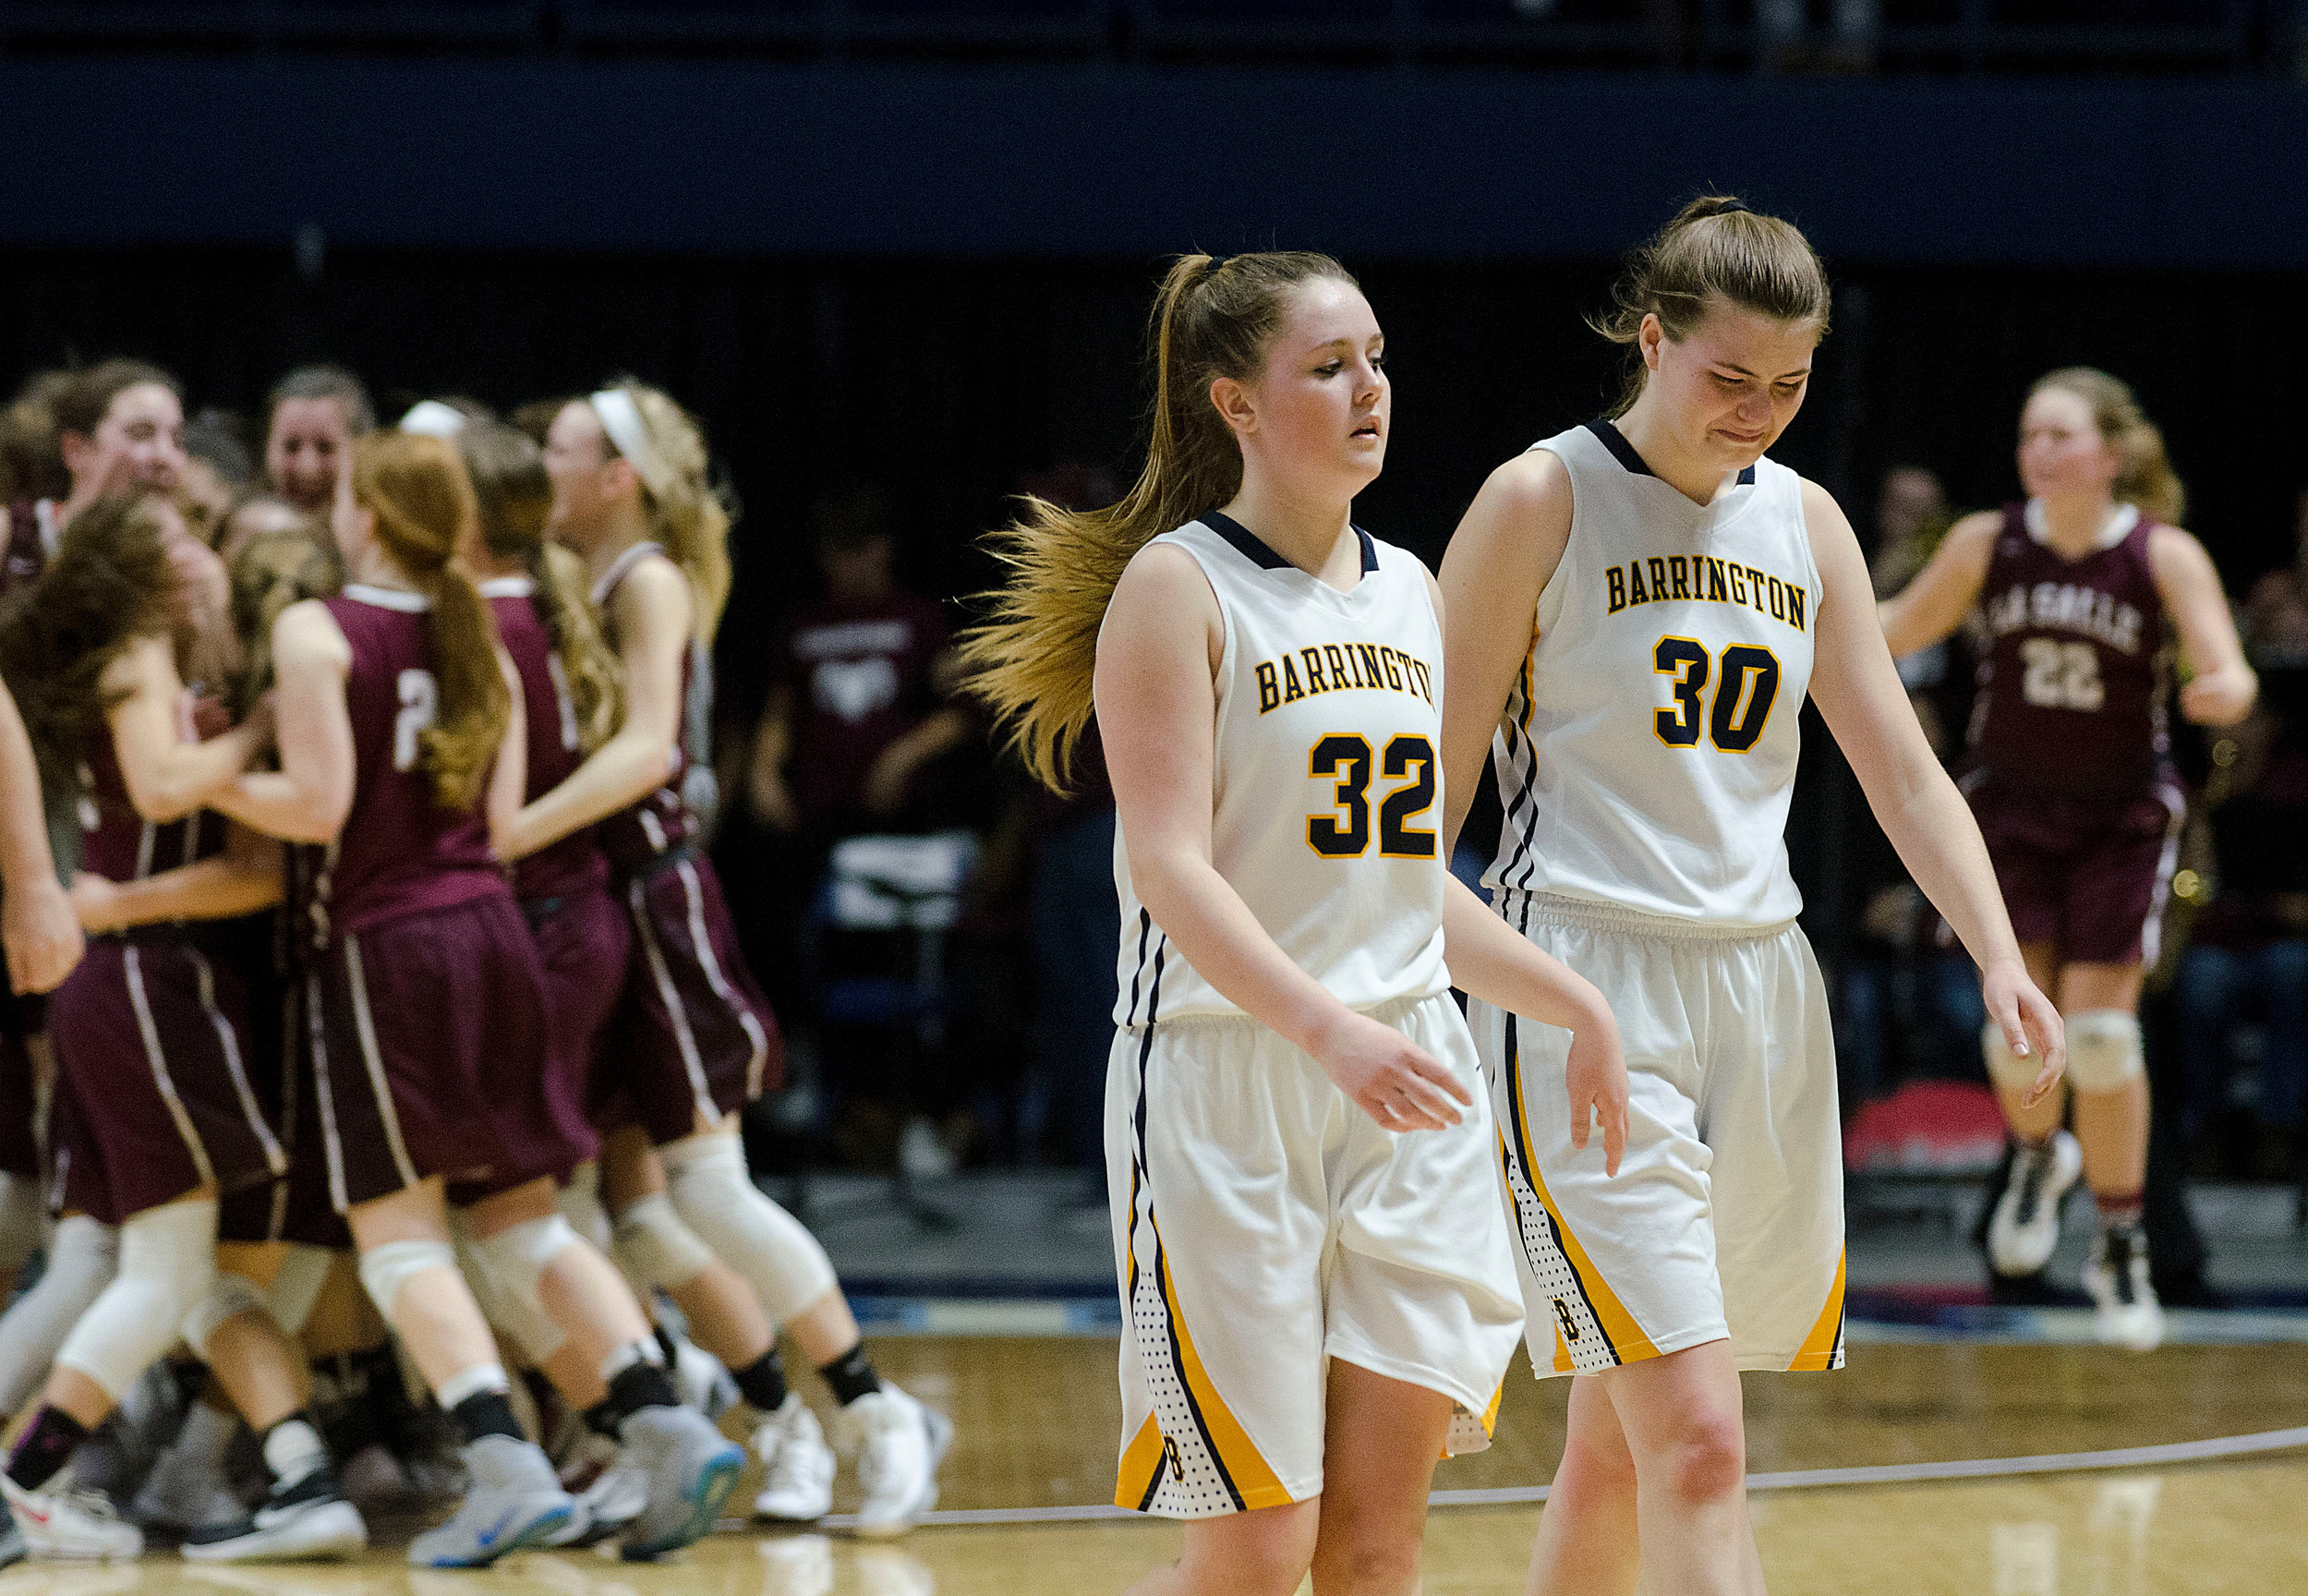 Elizabeth Hutchings and Grace Coutu wallk of the court as Lasalle celebrates after winning the championship.